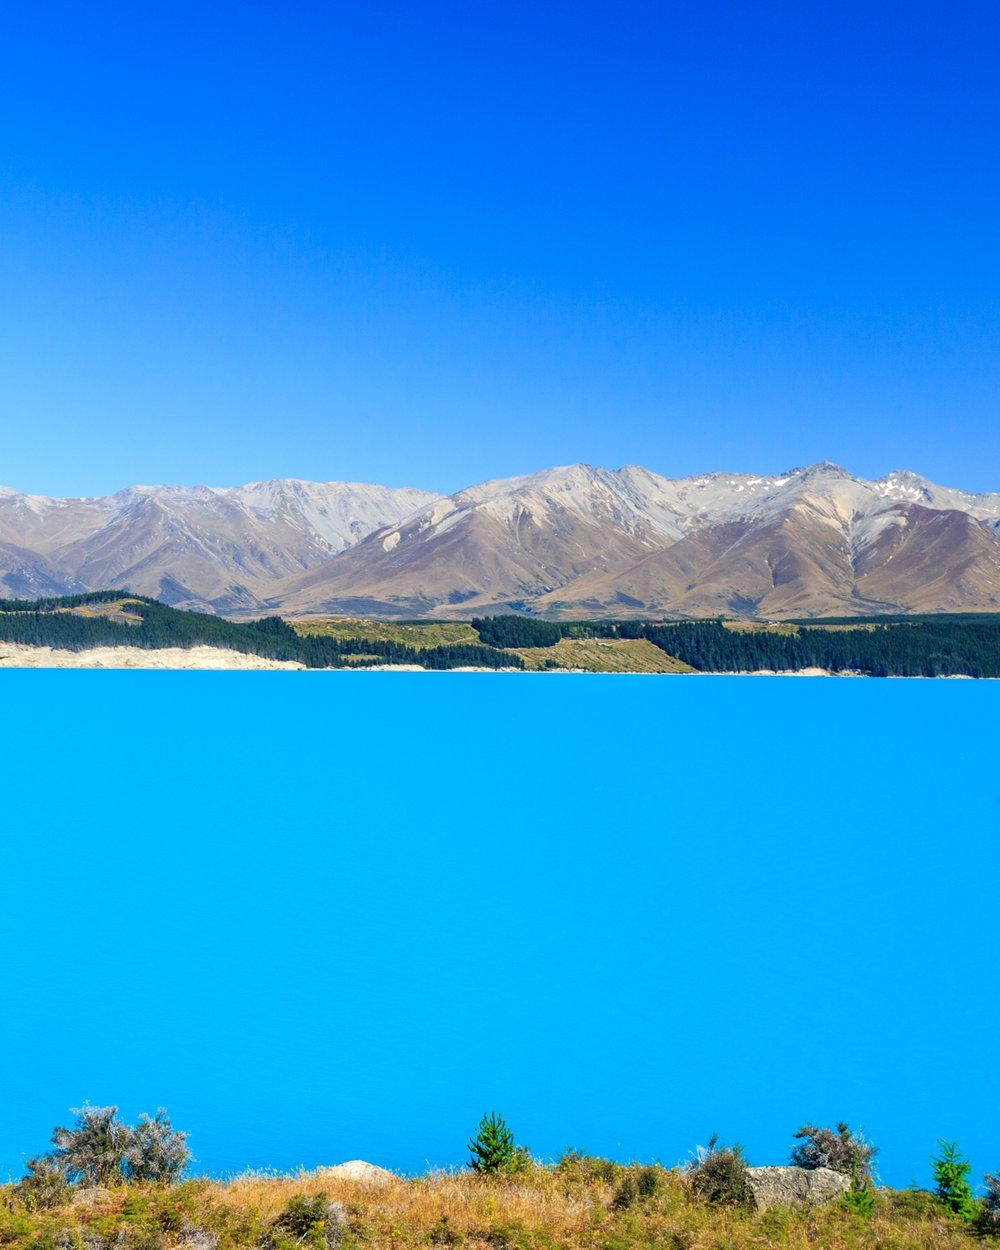 Instagrammable spots of New Zealand: Lake Pukaki